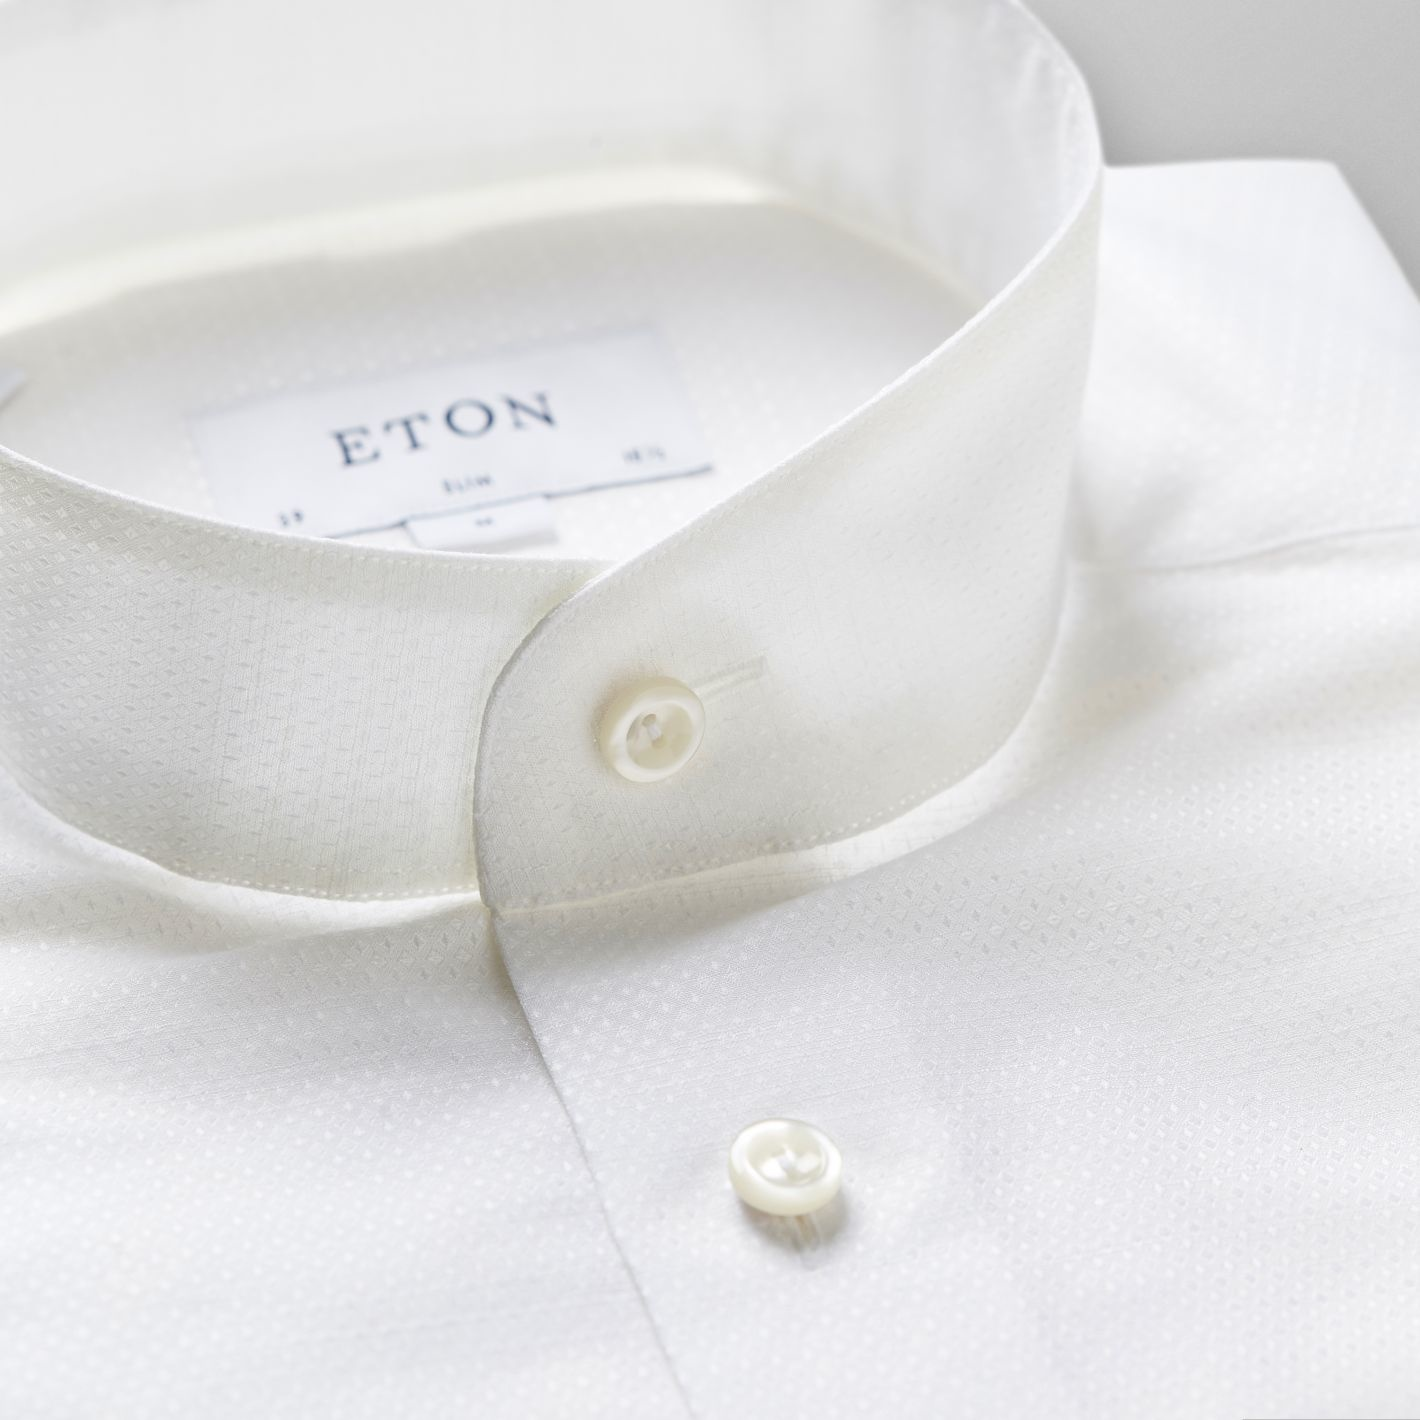 Eton Mandarin Collar with diamond print